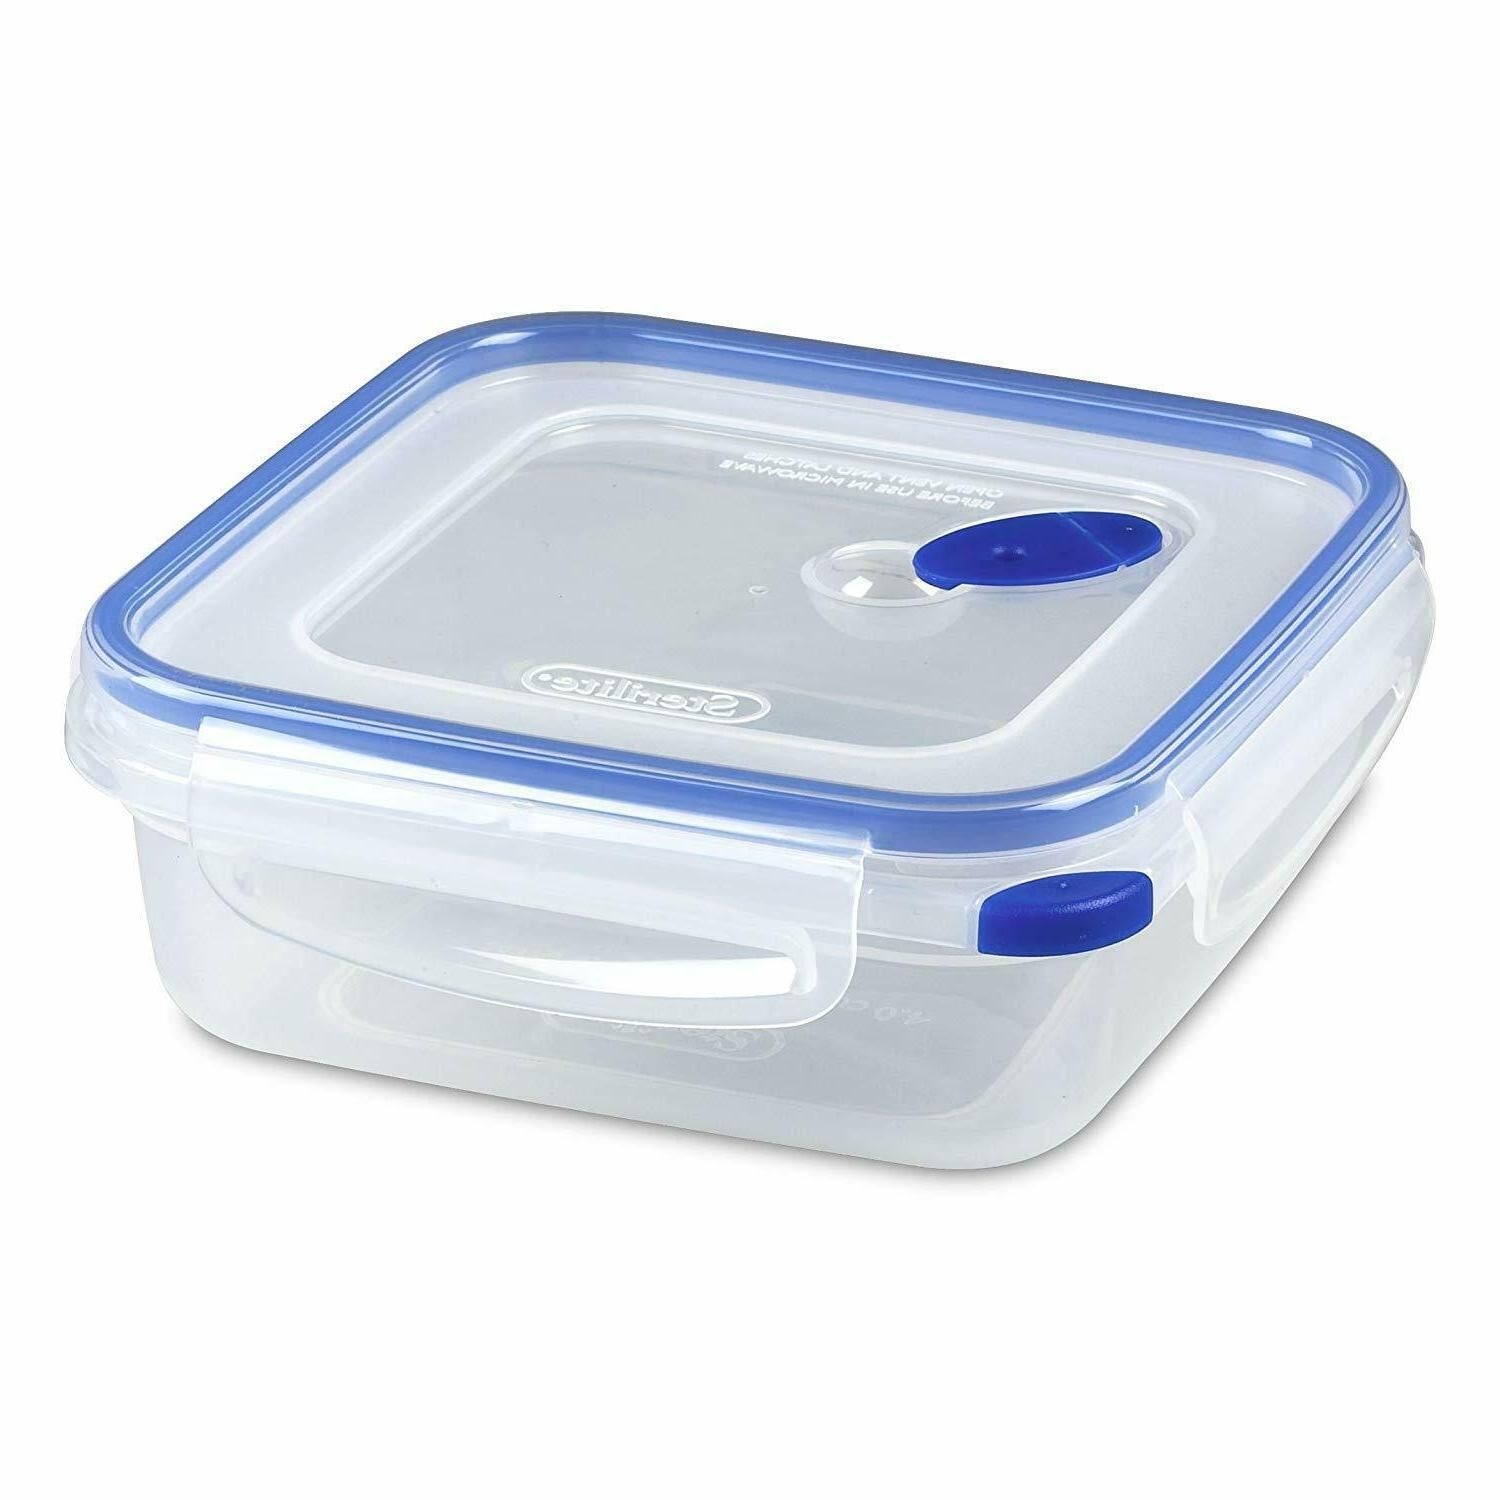 Sterilite Ultra-Seal 4 Cup Food Storage Container